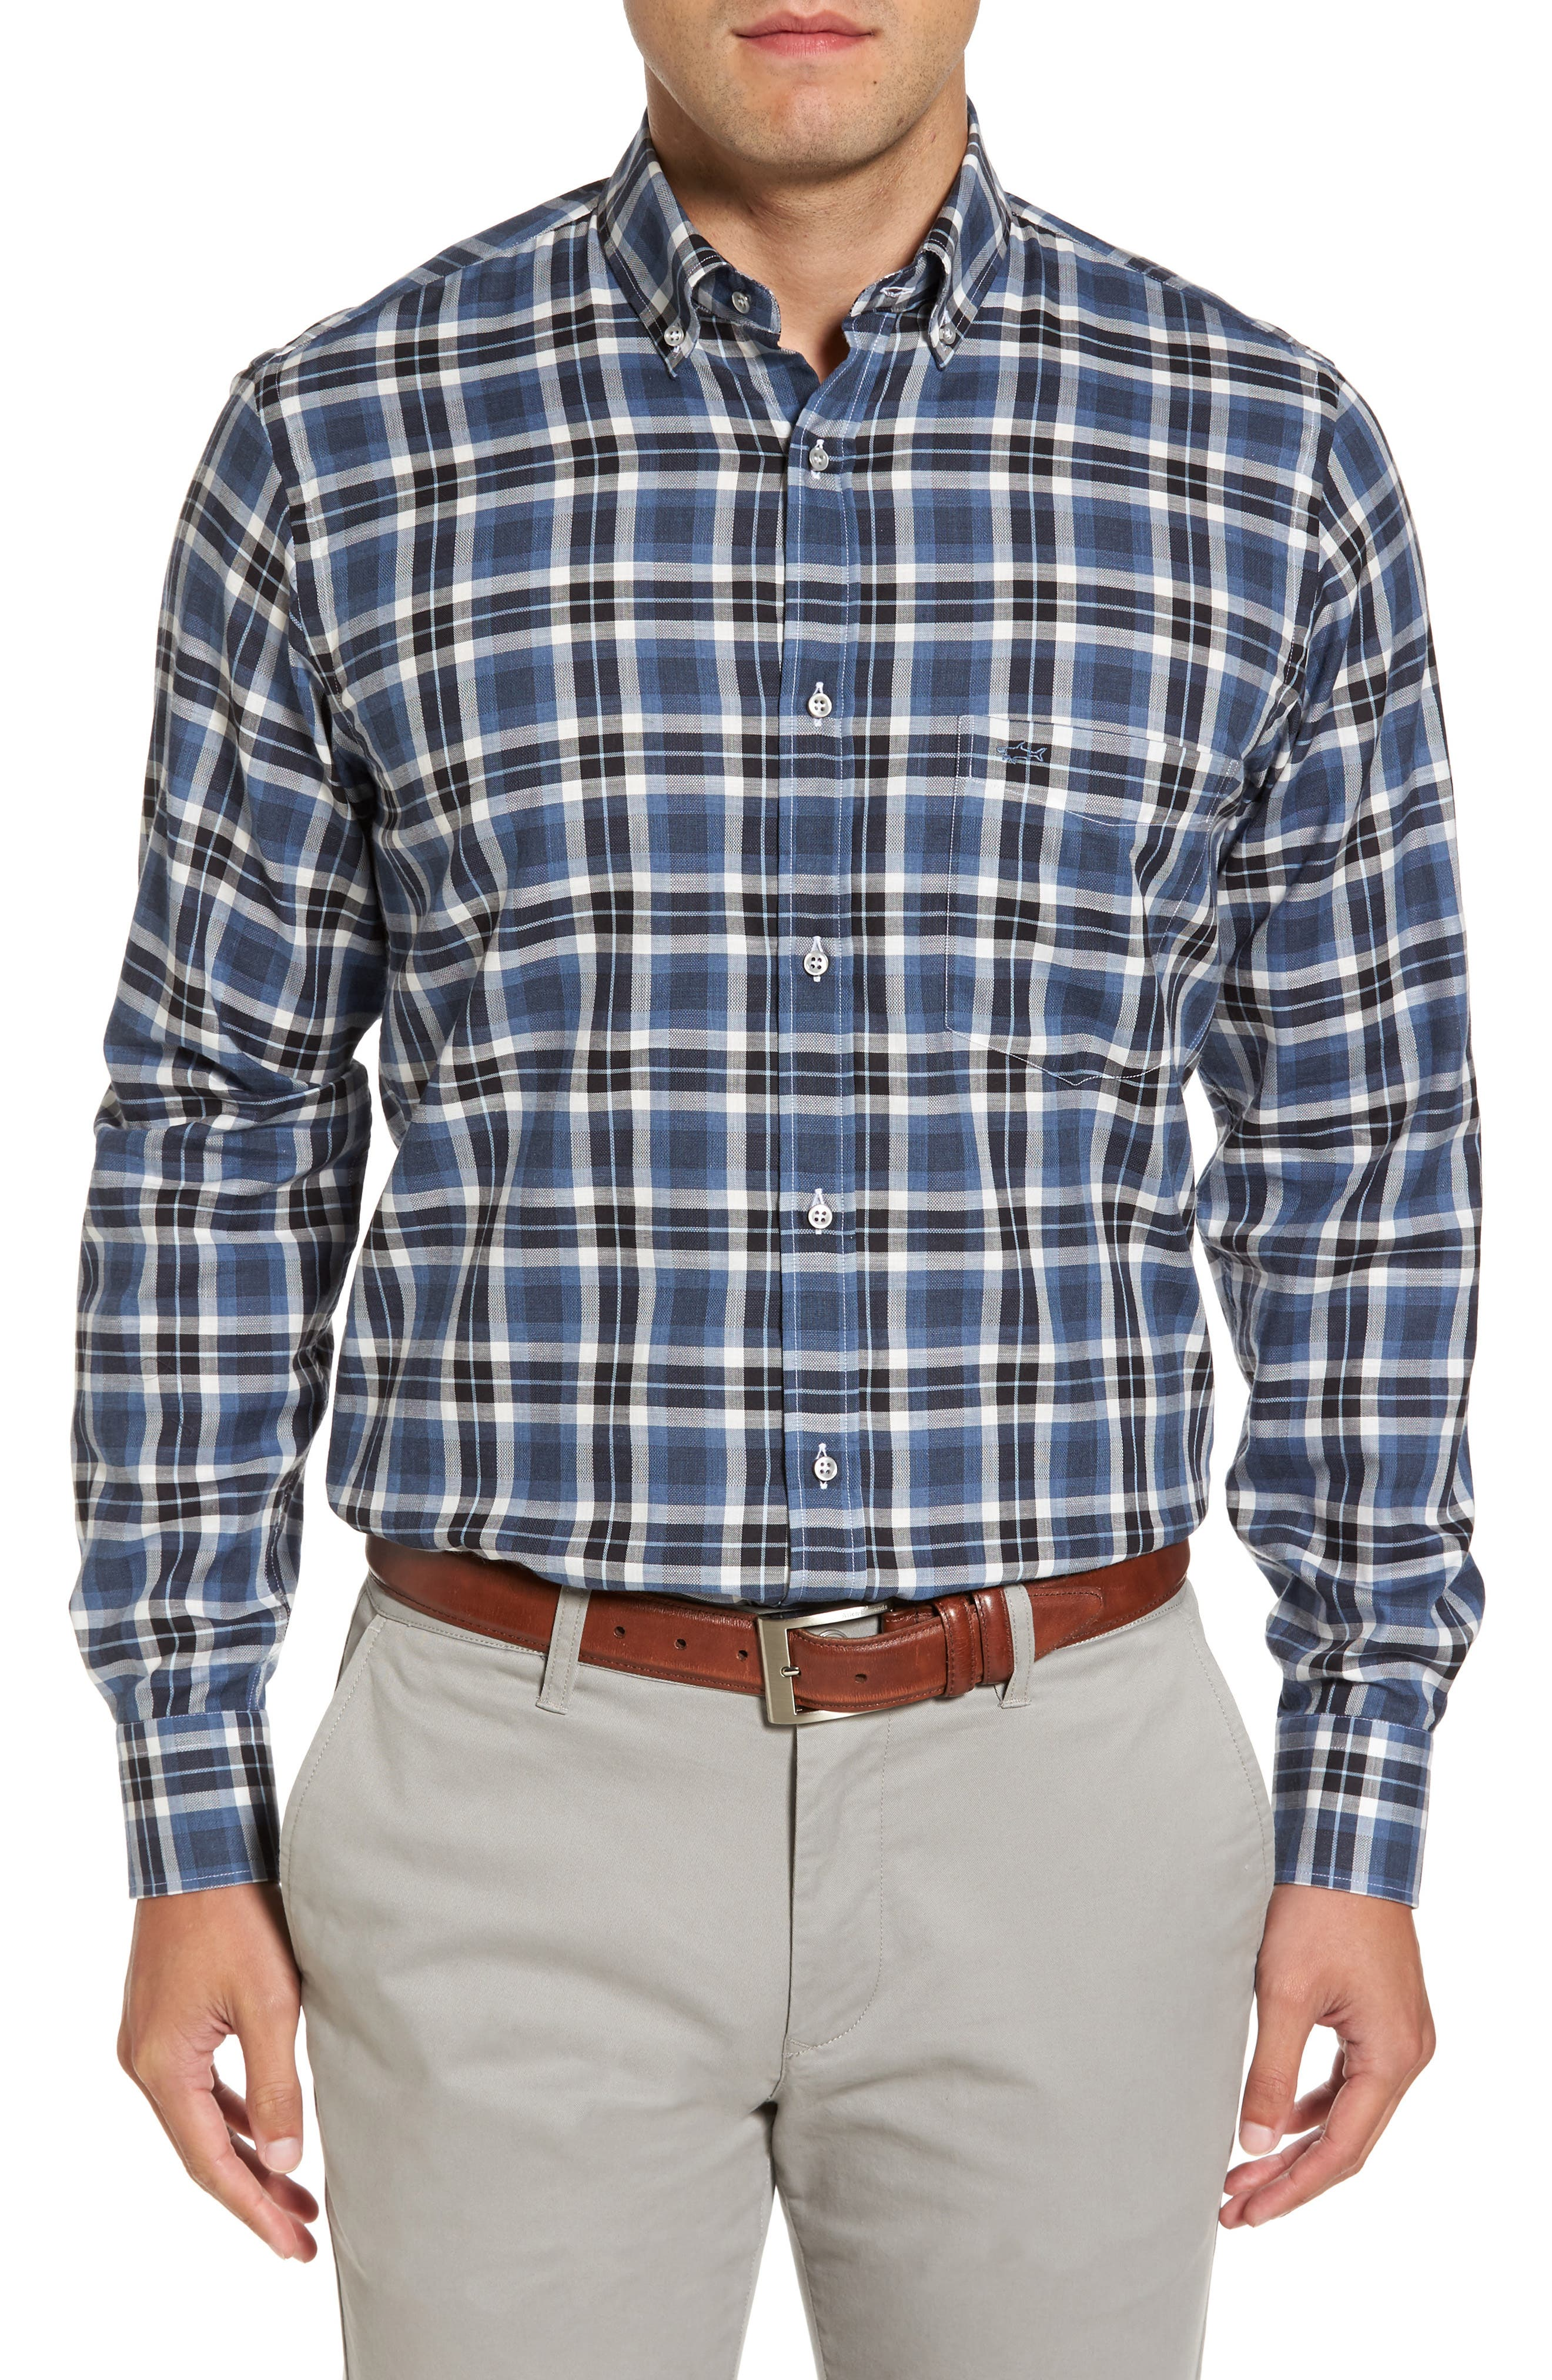 Paul&Shark Silver Collection Plaid Sport Shirt,                         Main,                         color, Blue / Grey